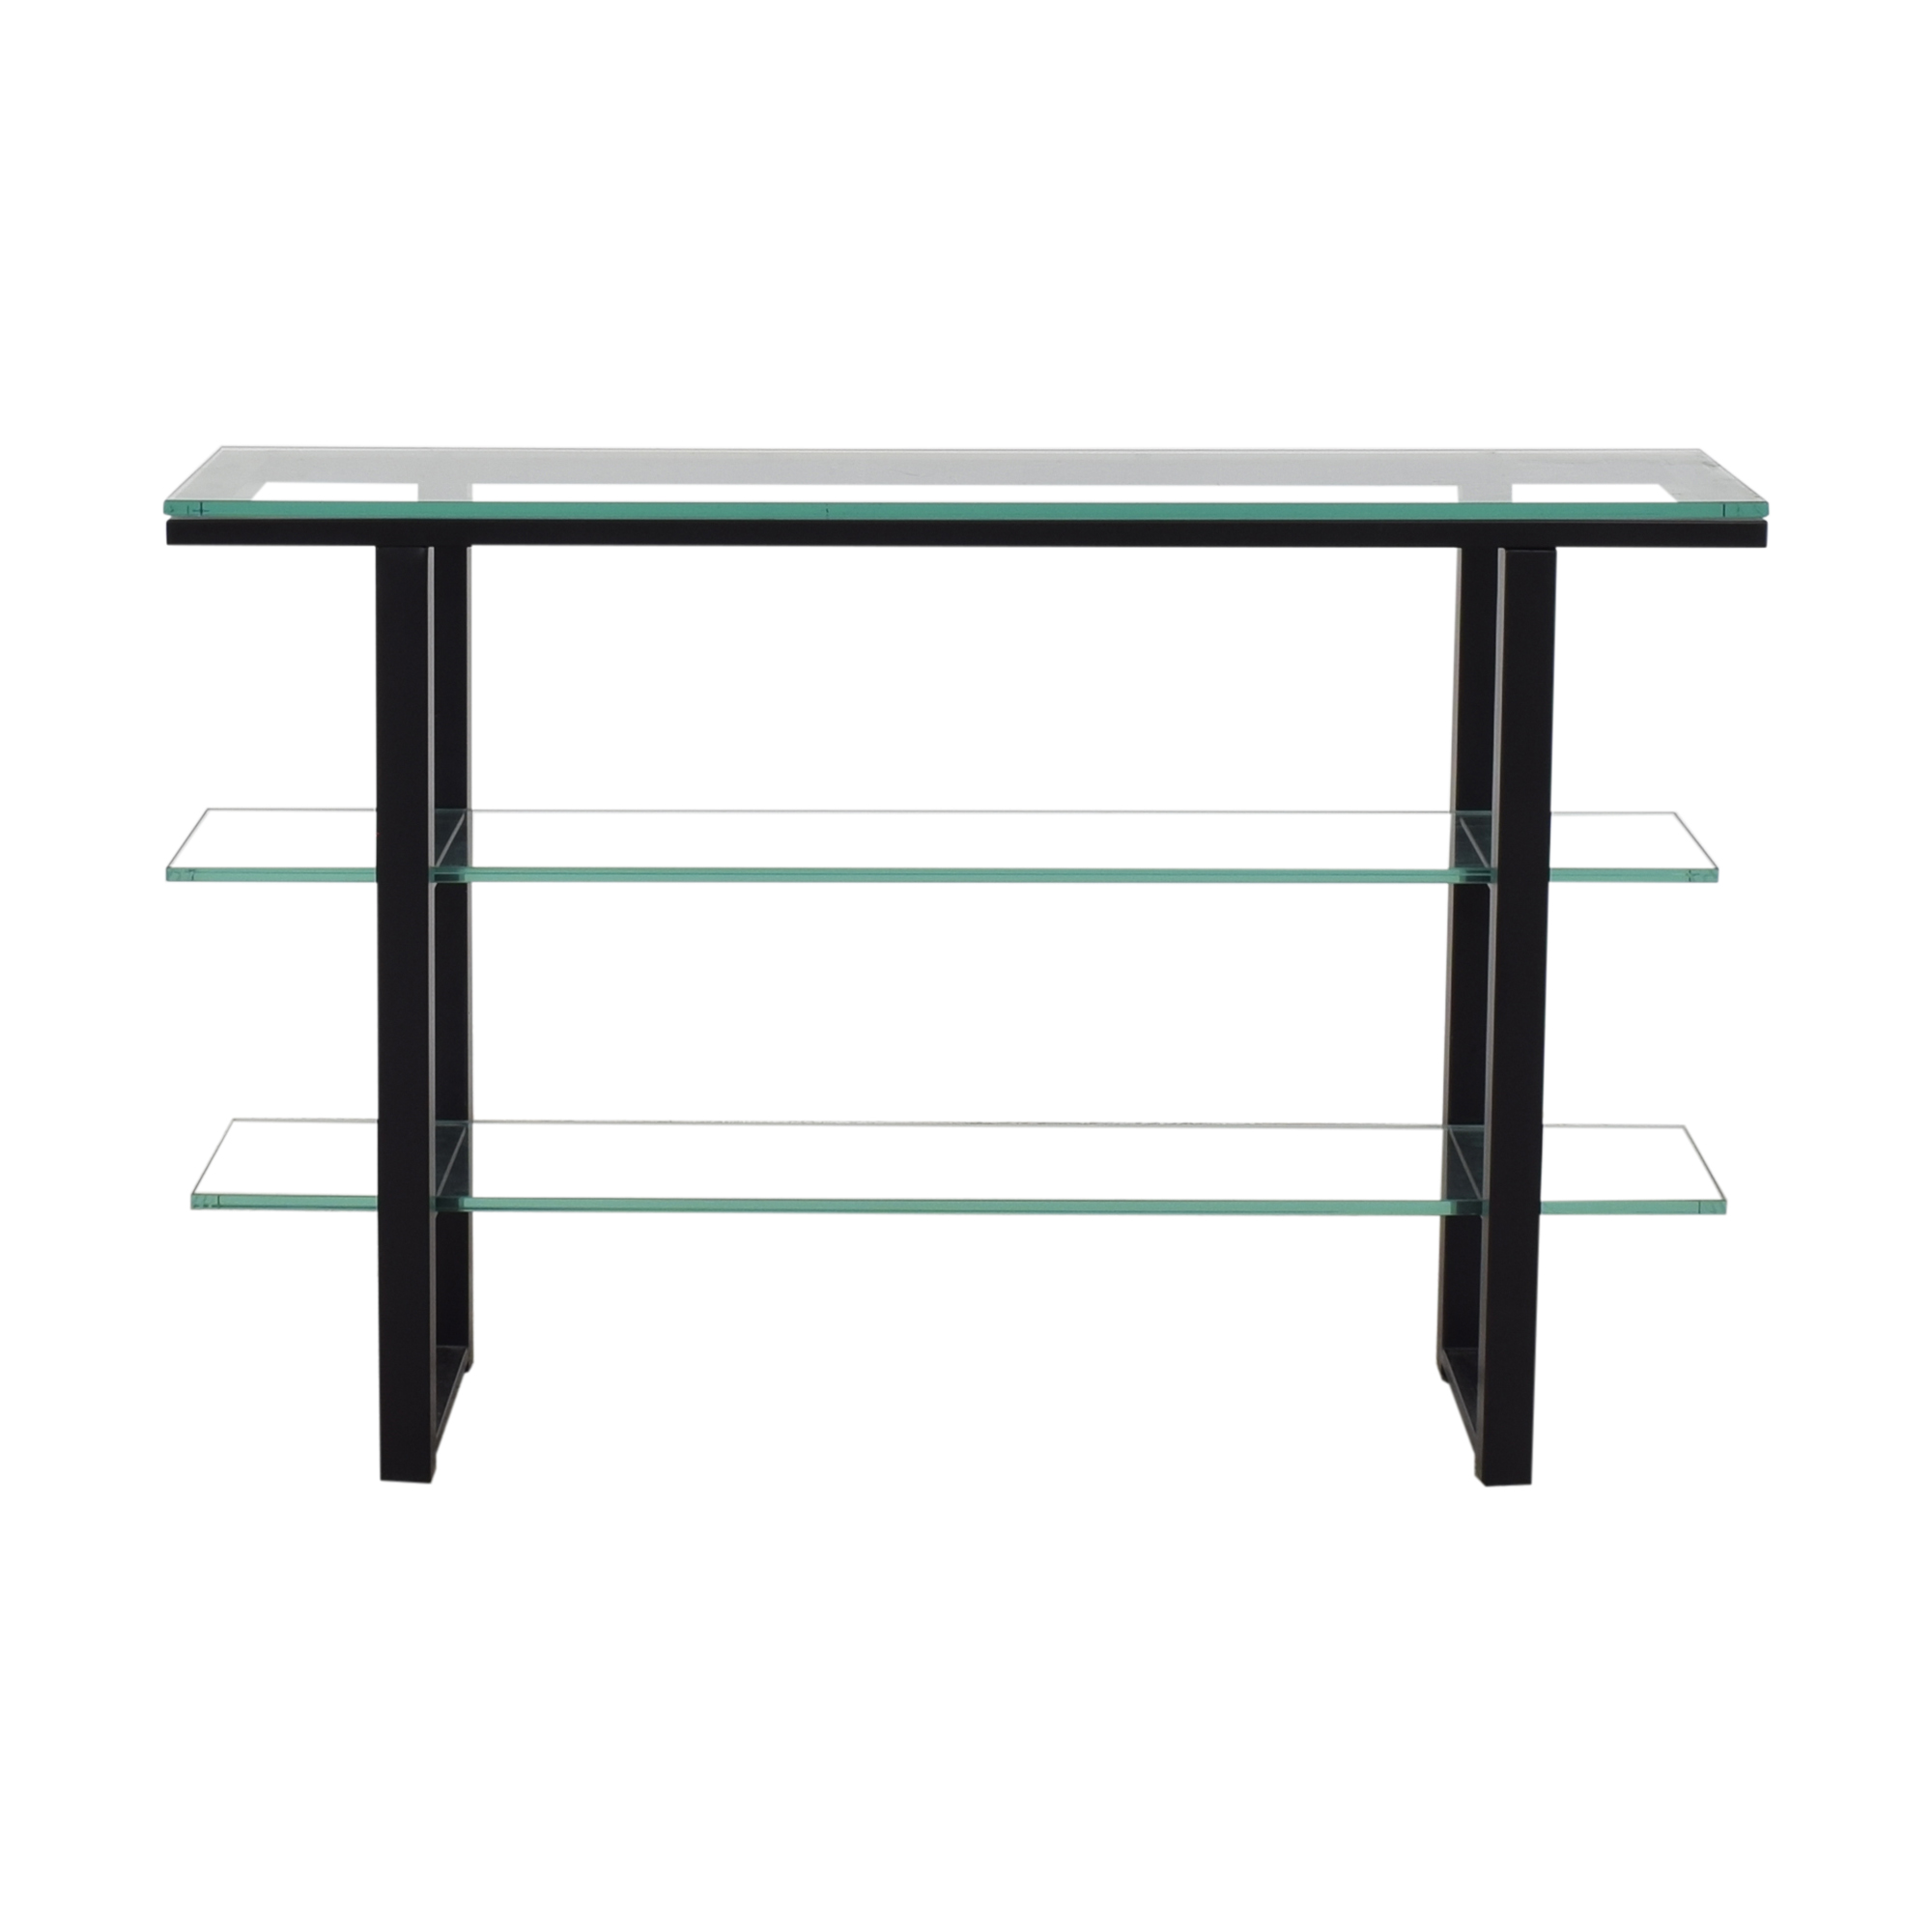 Contemporary Console Table / Tables